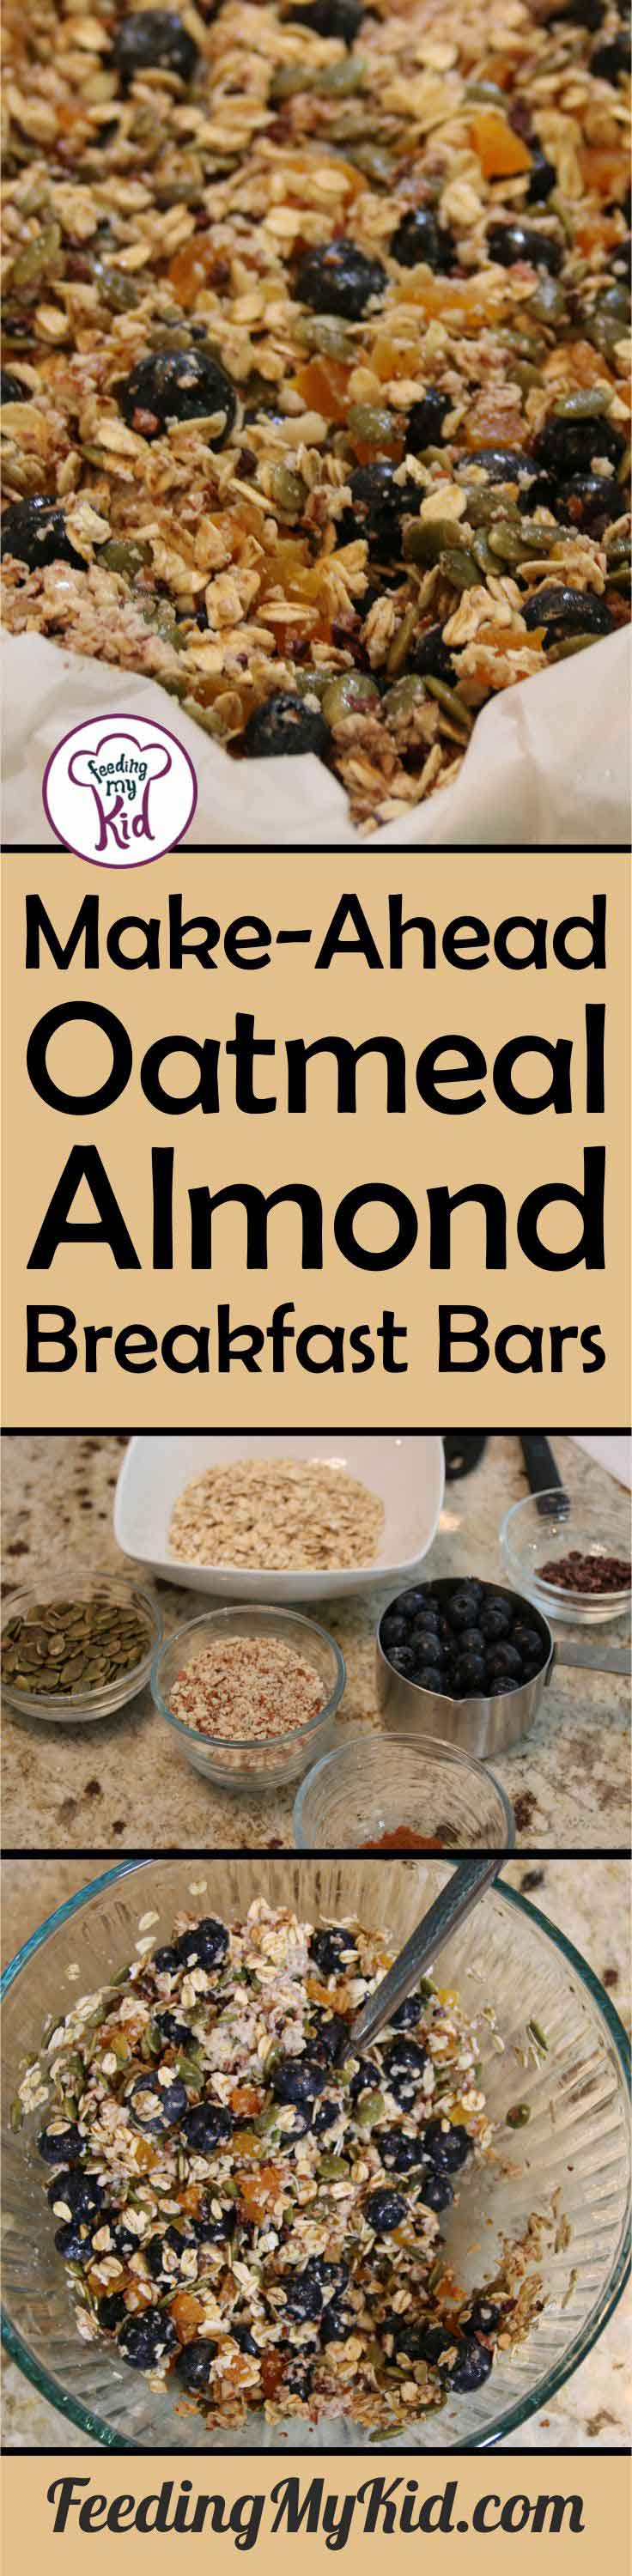 This breakfast bar recipe is perfect for those busy mornings. You can make this ahead of time and save for the whole week! Your kids will love it.